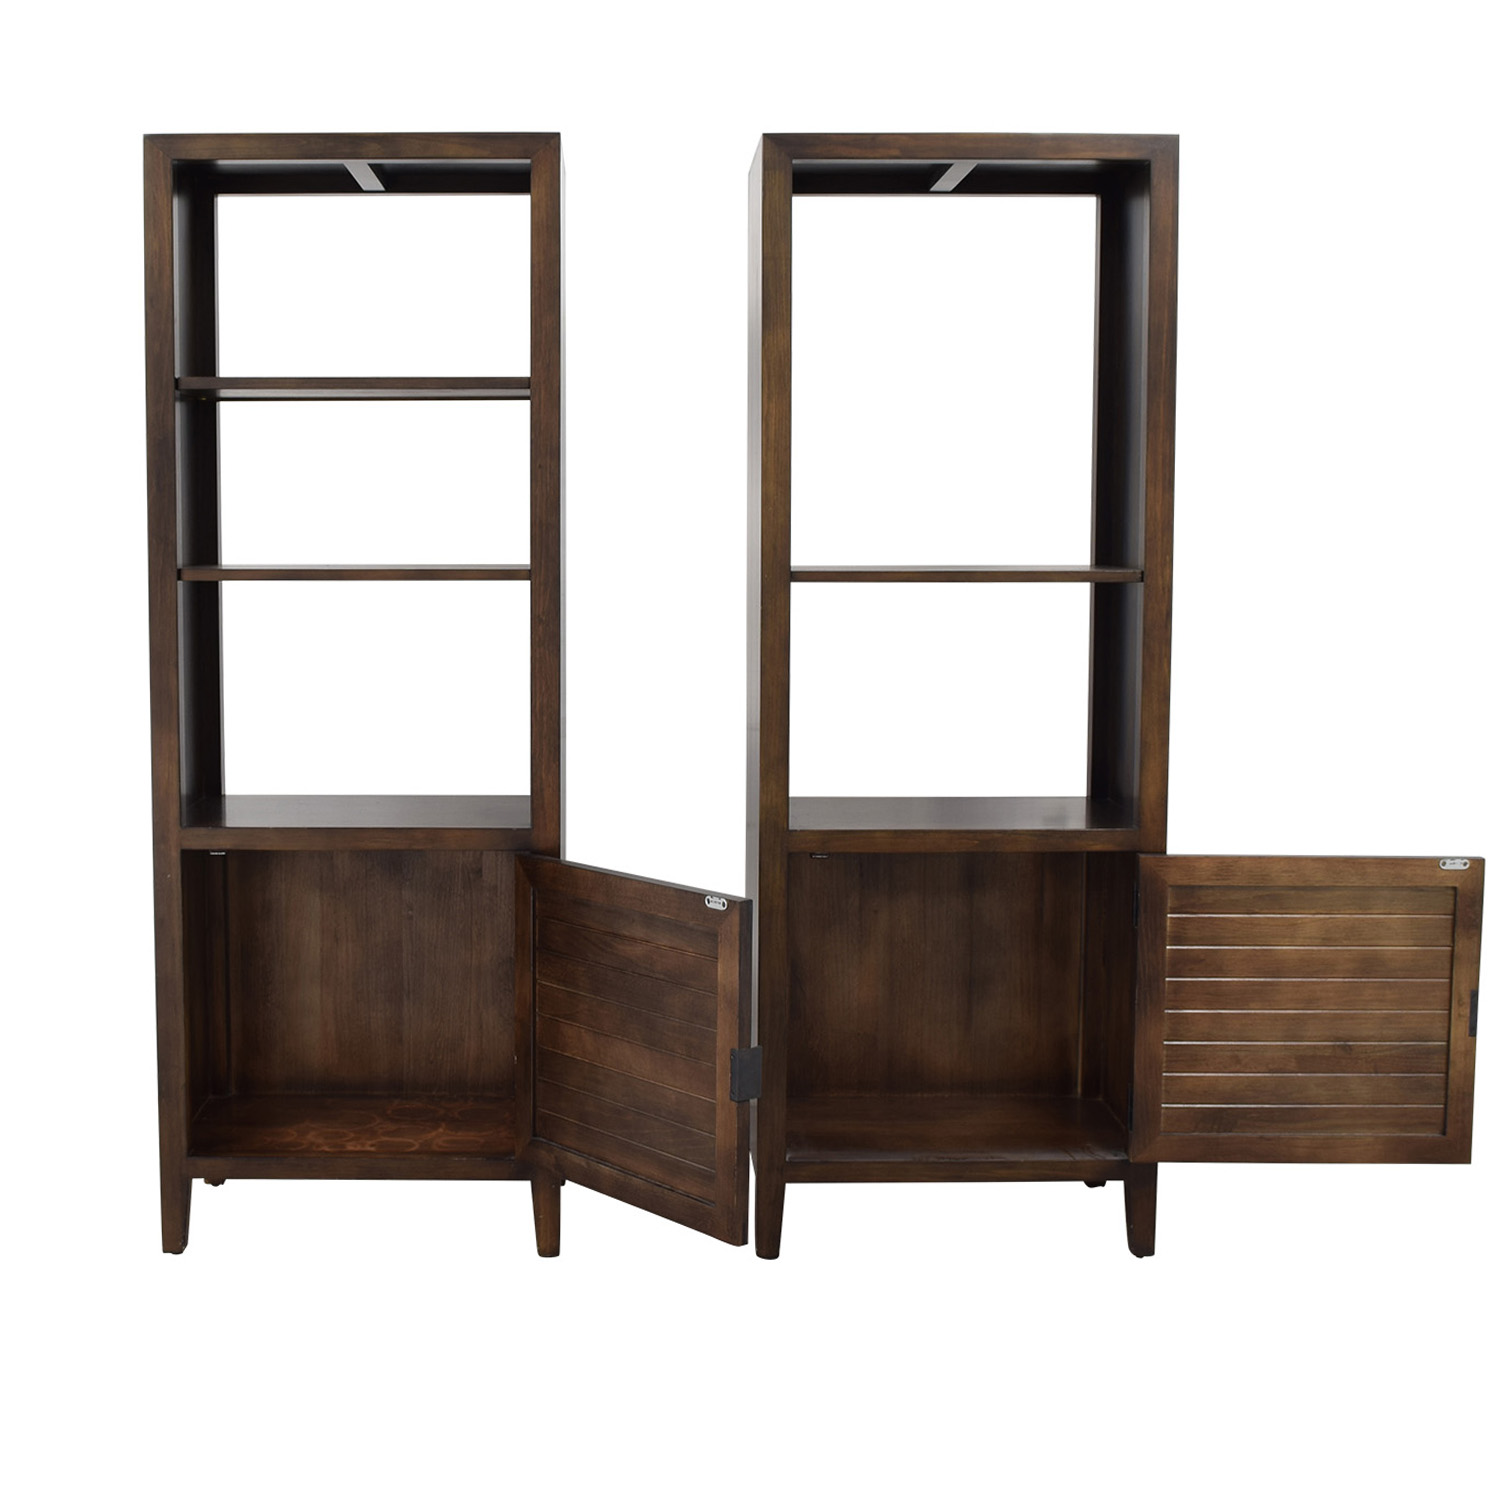 Crate & Barrel Crate & Barrel Bookshelves coupon